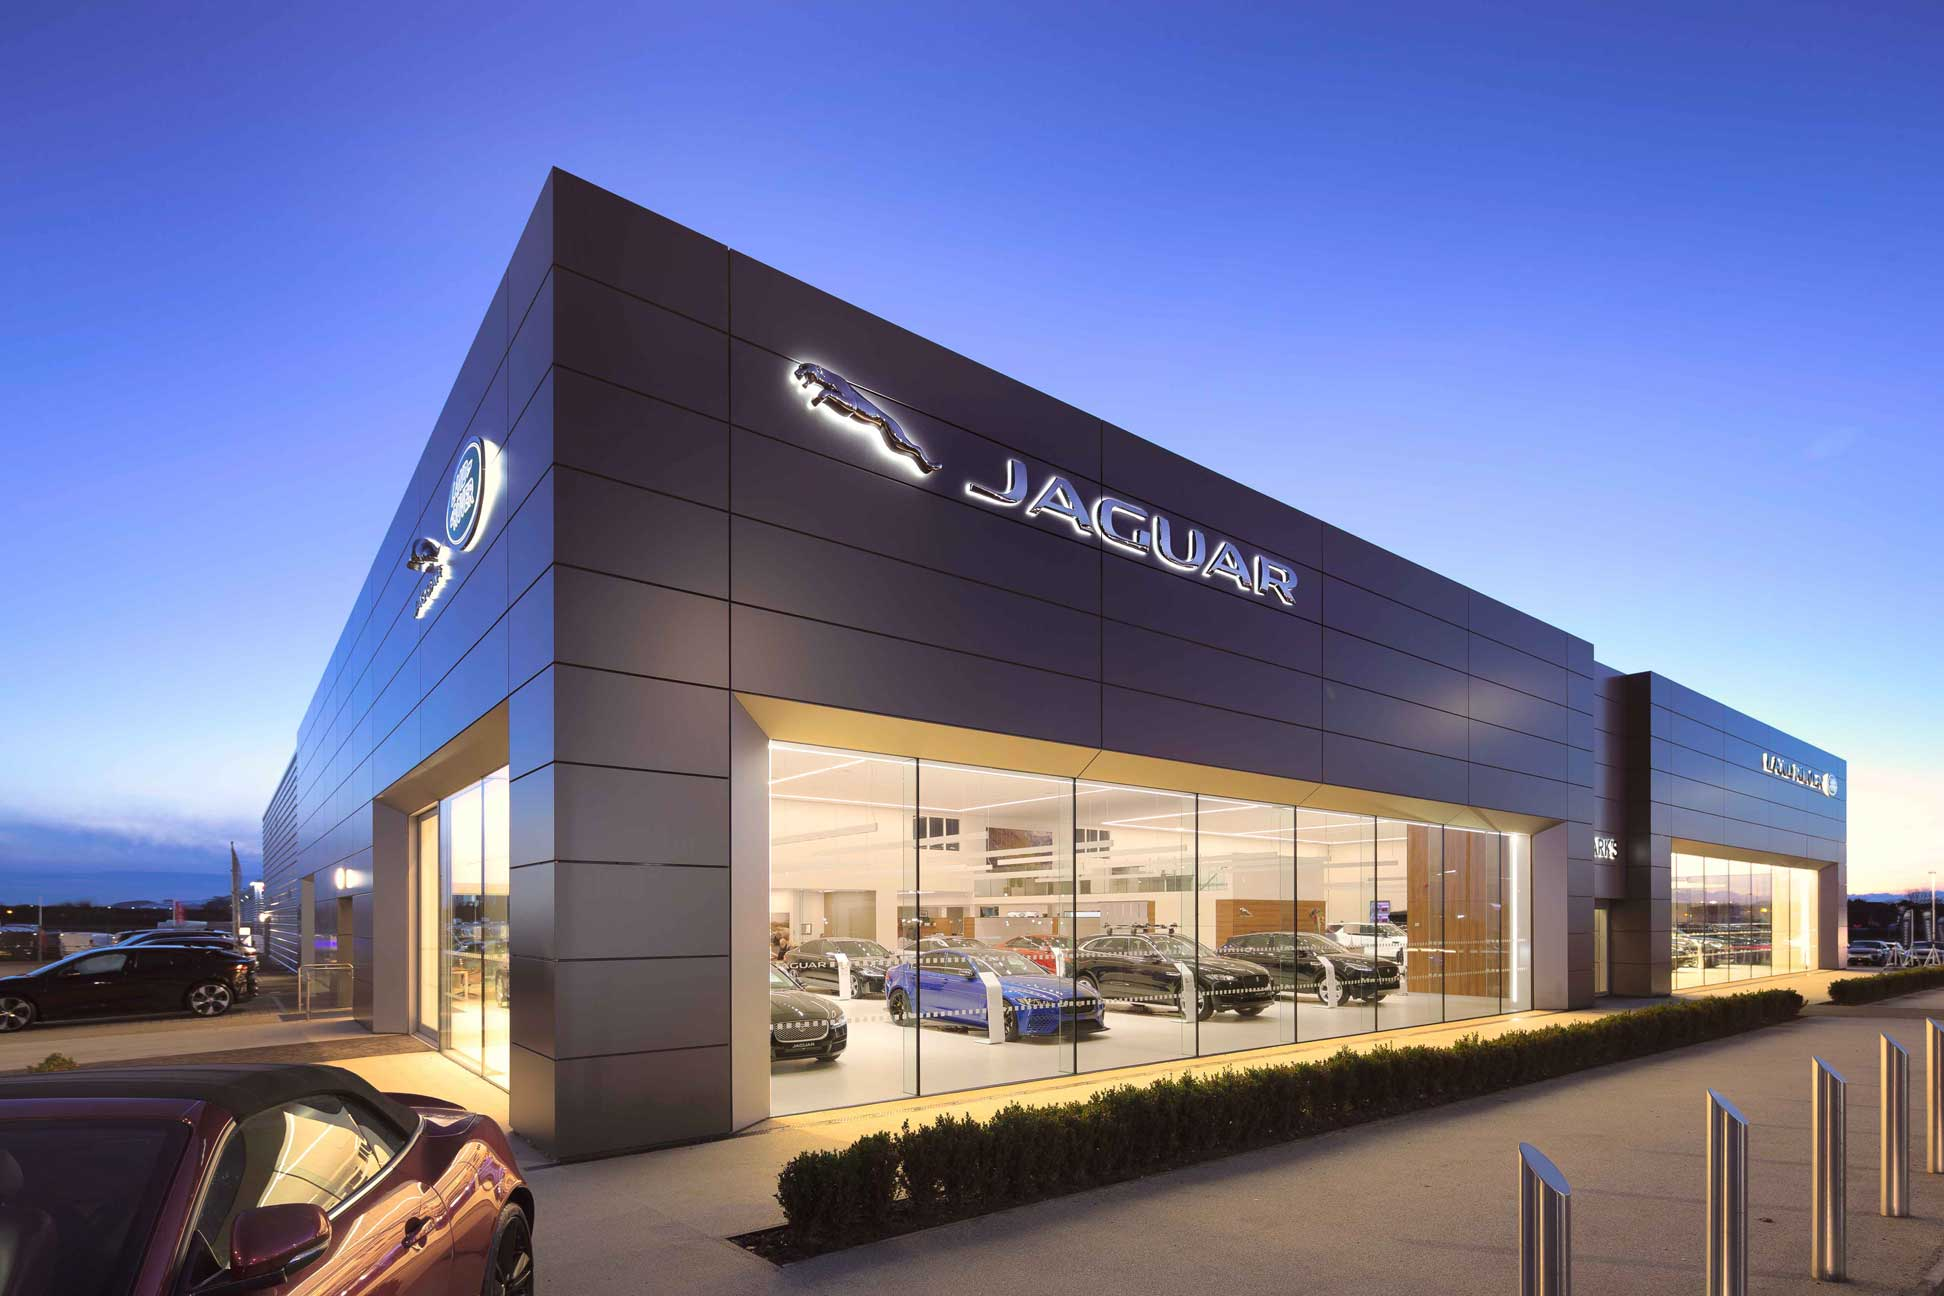 capturing the essence of luxury brands Jaguar Land Rover through construction using modern Alucobond Facades. Photography by James Thompson.